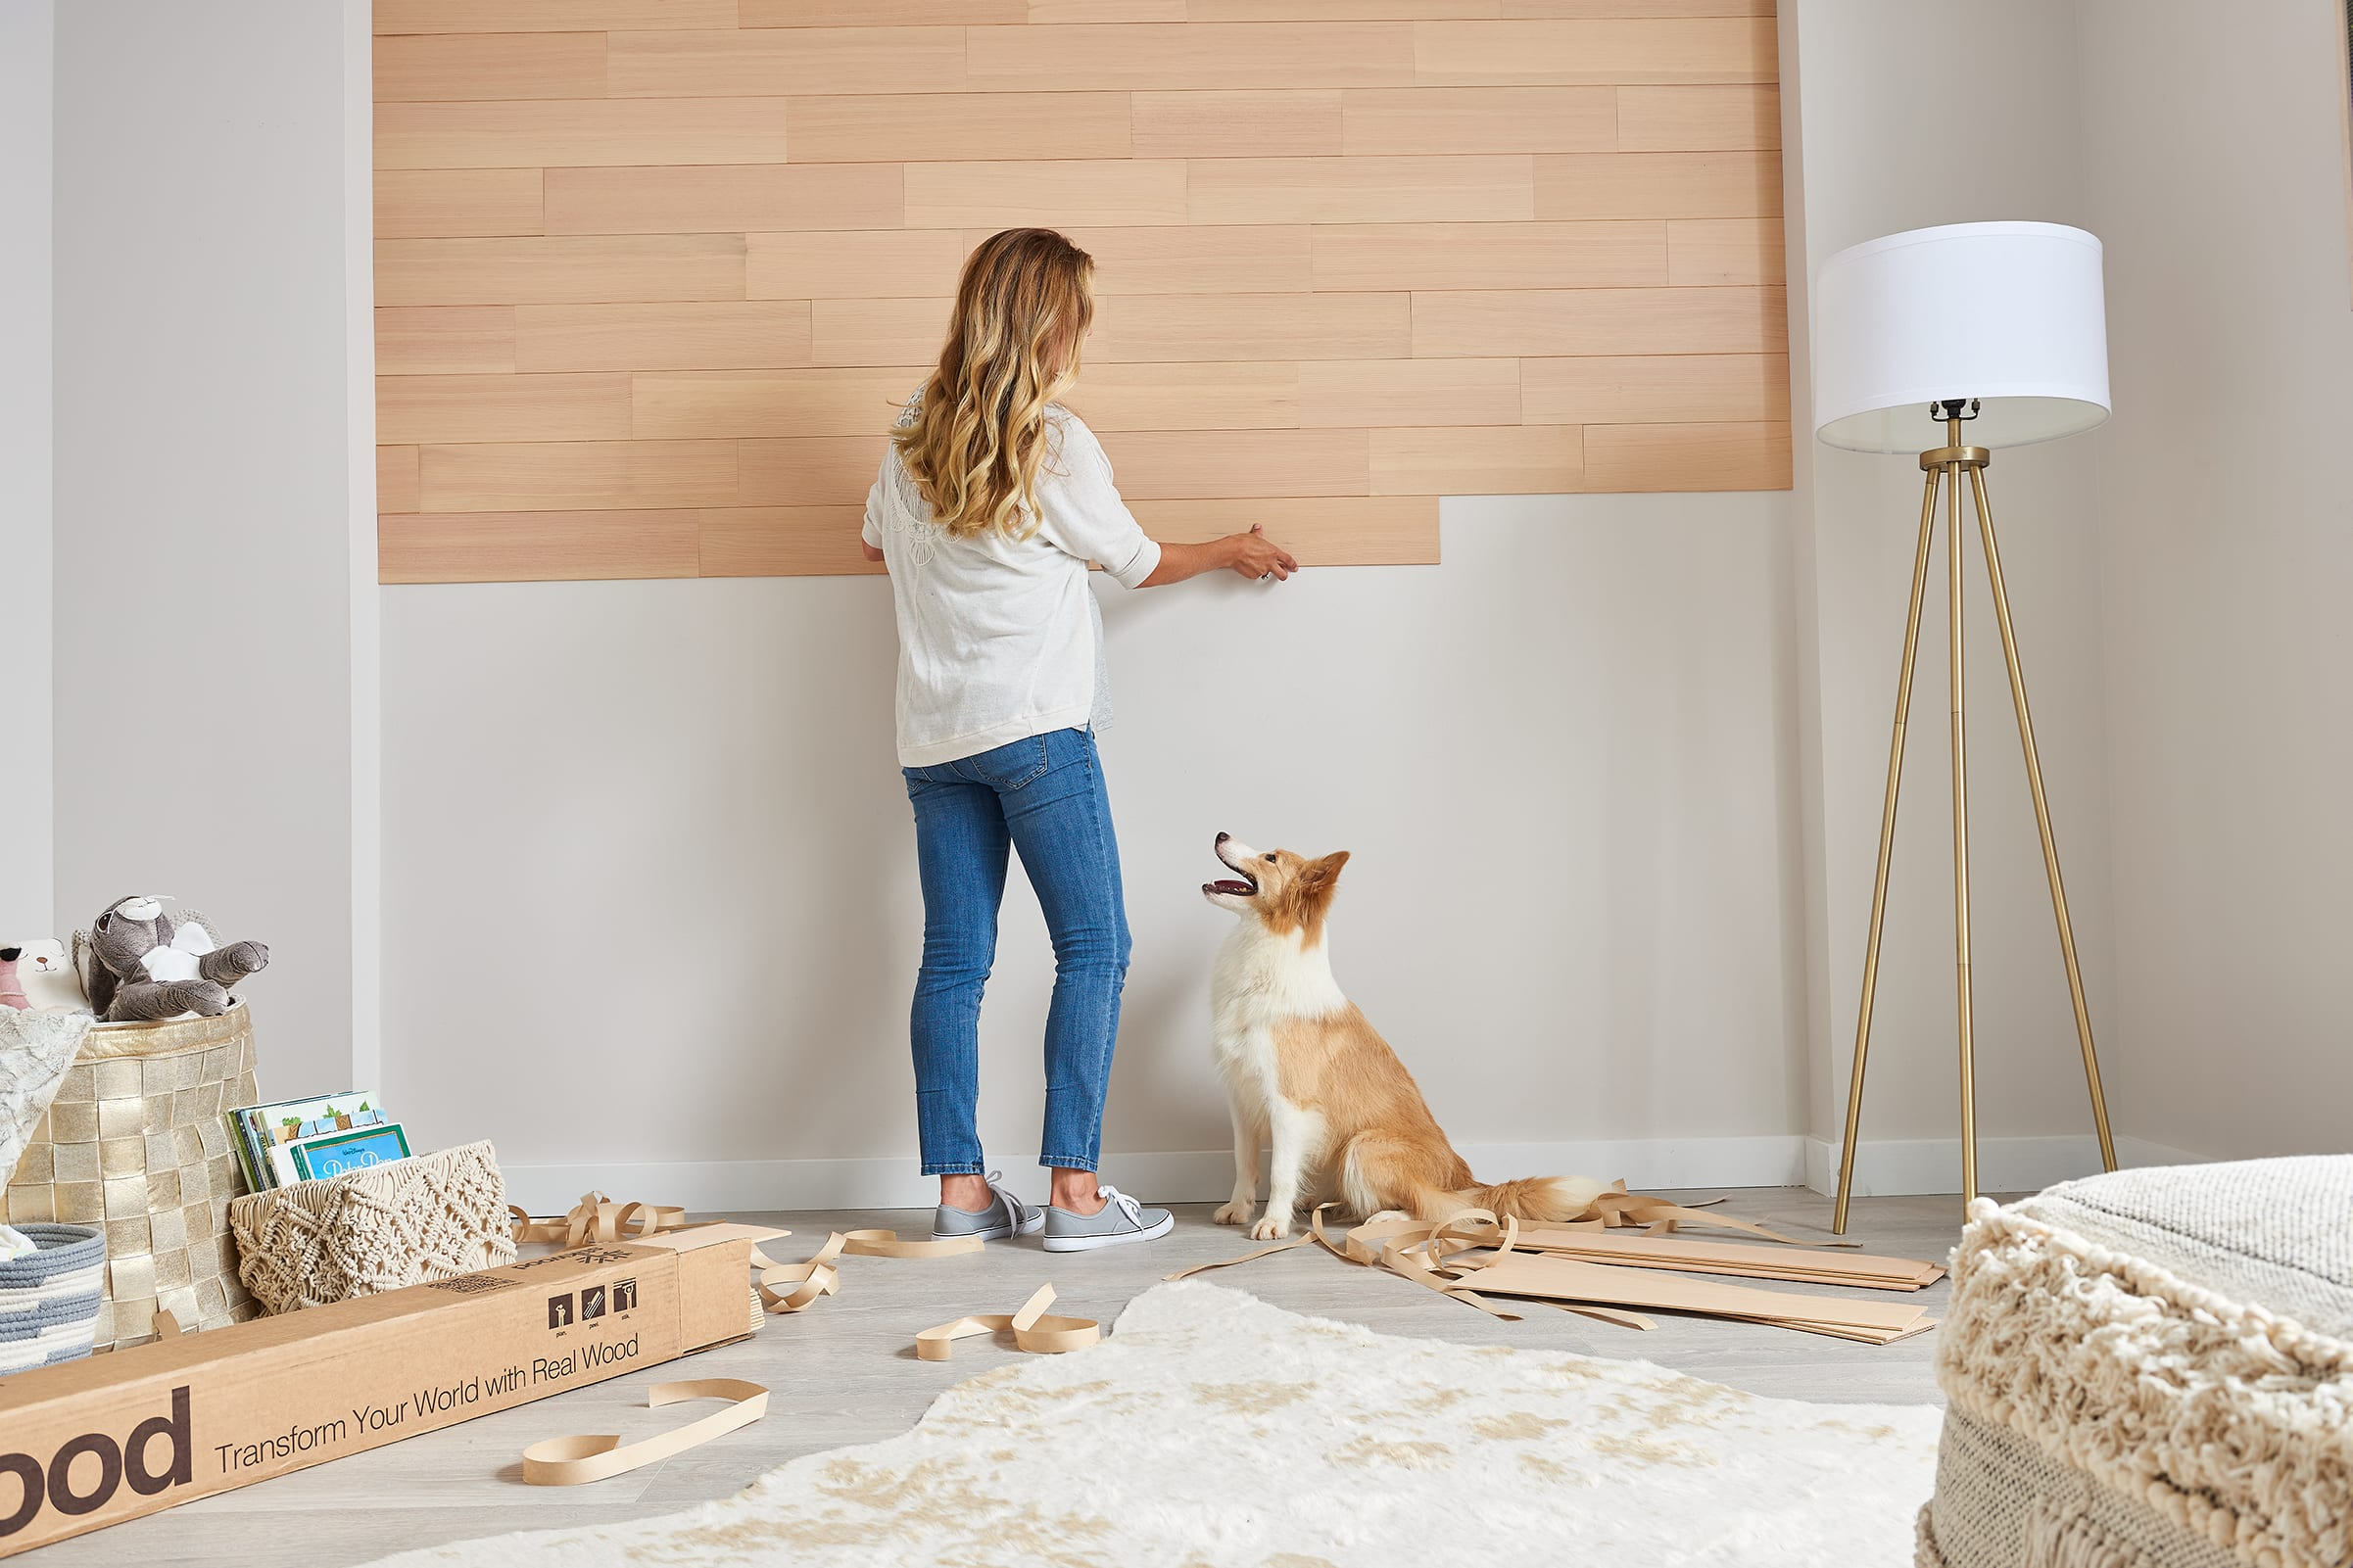 Pregnant woman and her dog preparing a nursery by installing vertical grain natural wood wall planks on an accent wall.